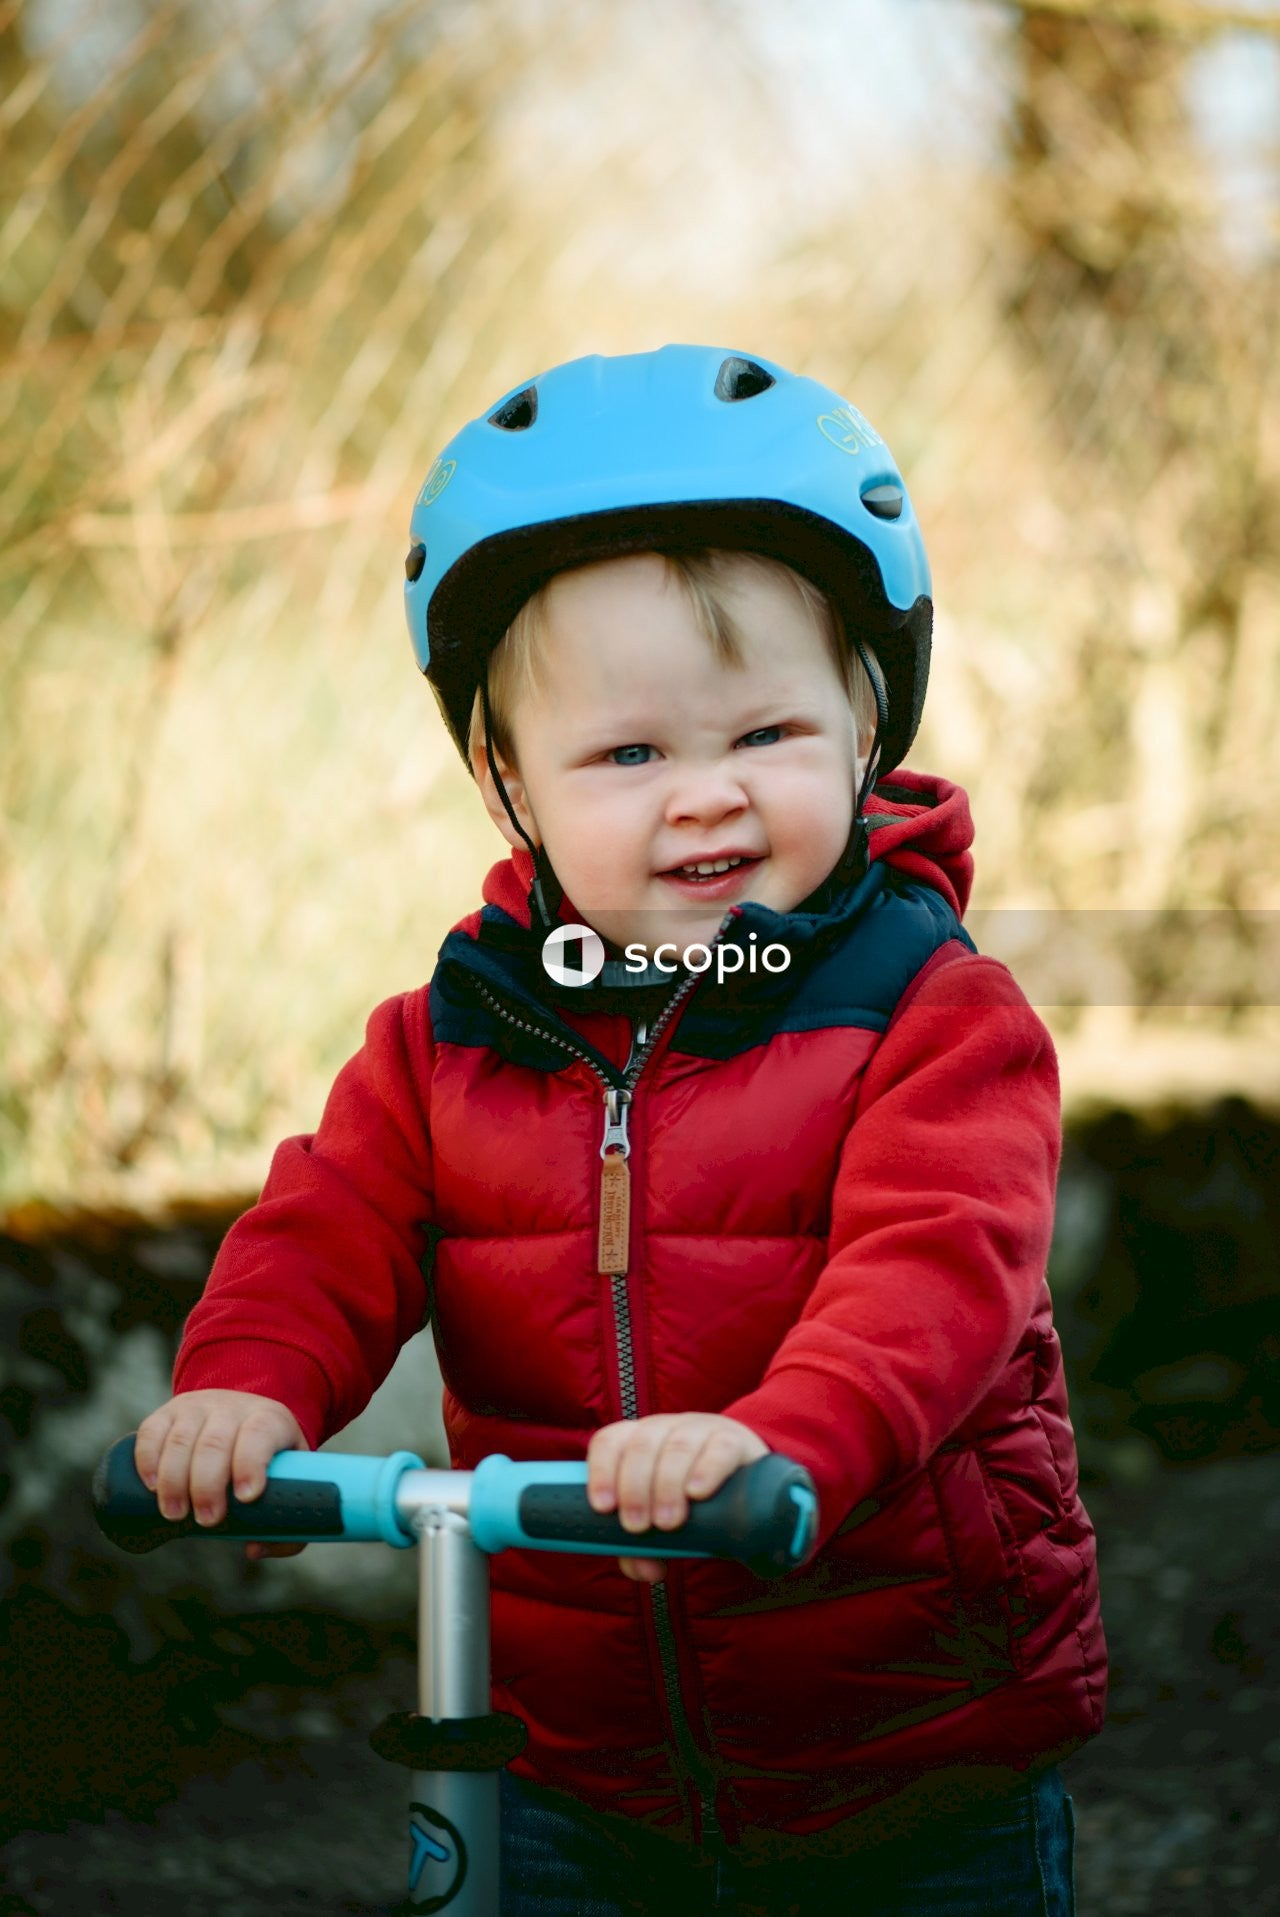 Child in blue jacket riding bicycle